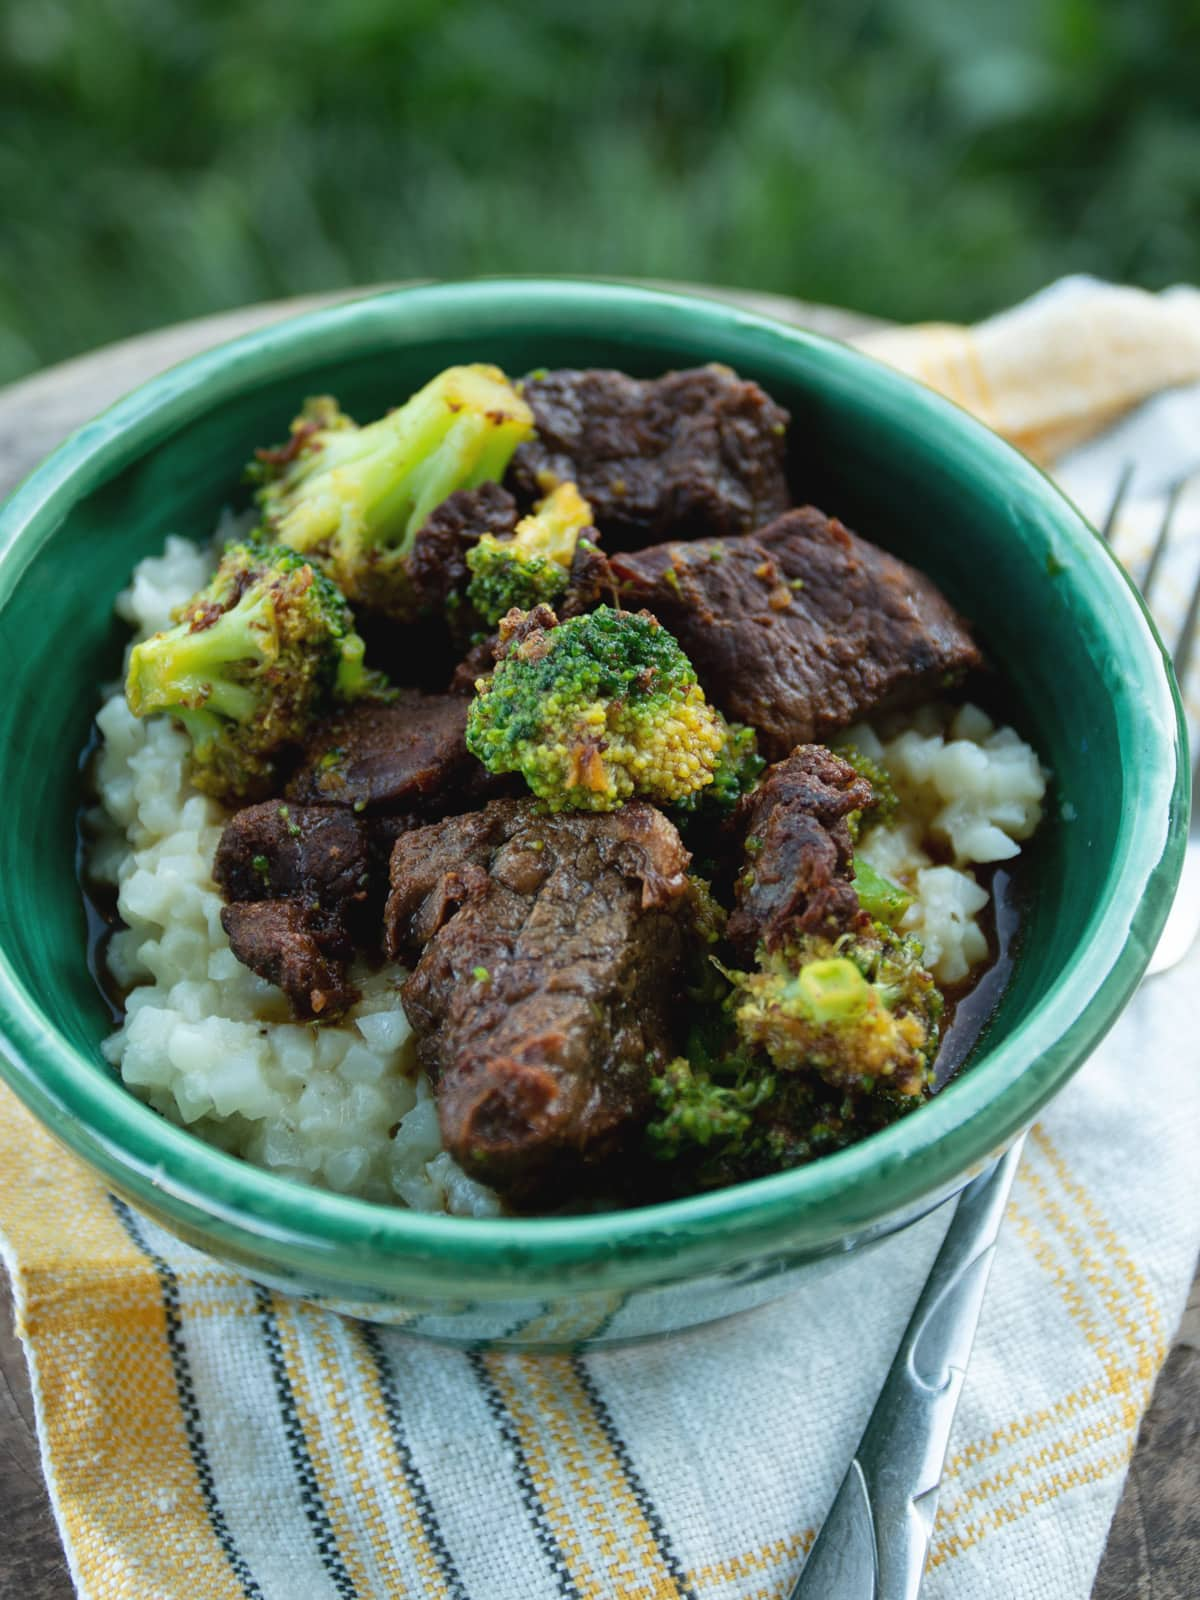 This delicious beef and broccoli recipe is quick and easy to make, and paleo-friendly. Start to finish, this recipe can be done in under 30 minutes.